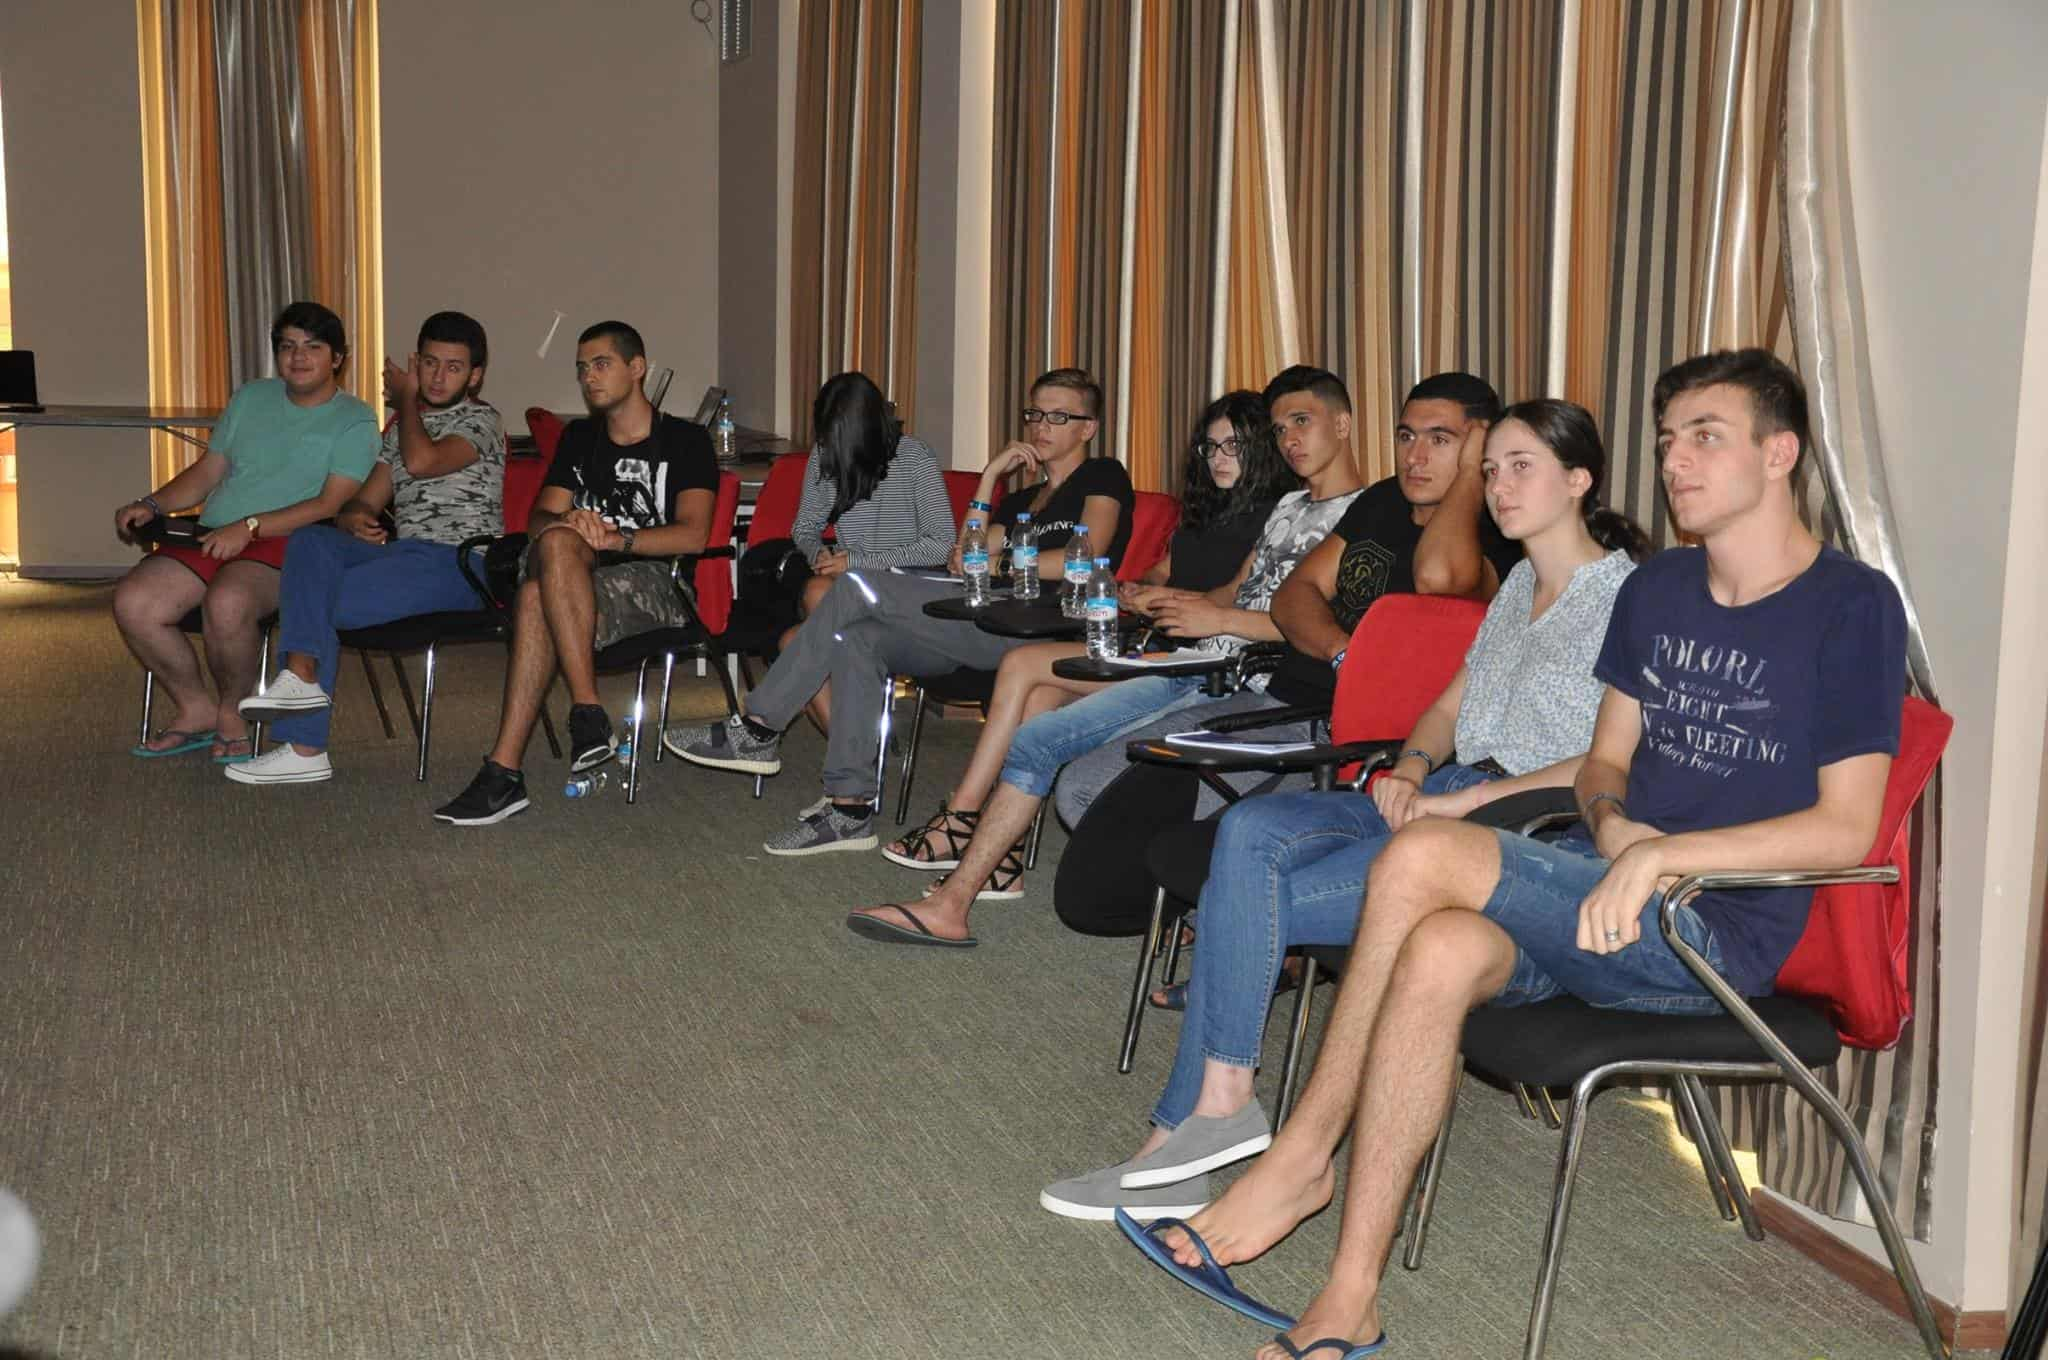 A group of young people sits in chairs in a room.